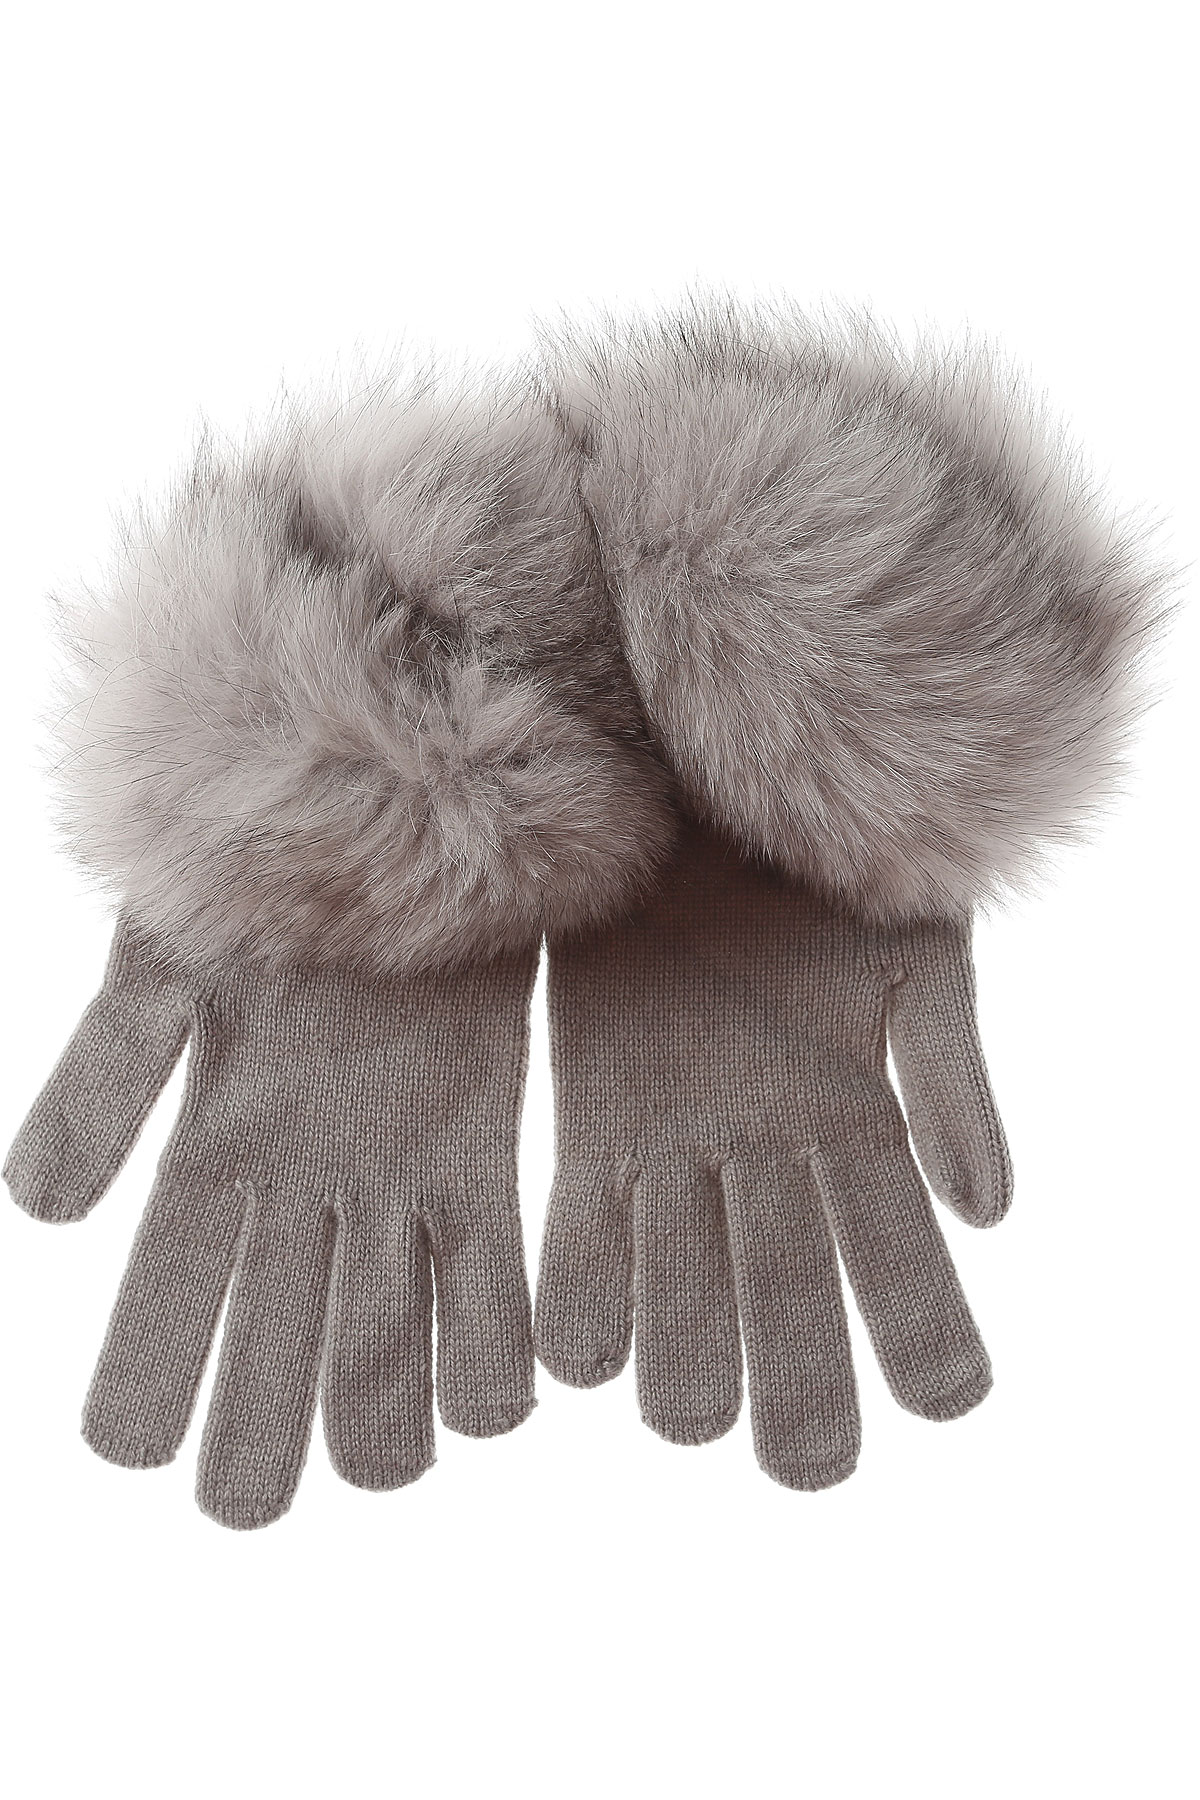 Image of D. Exterior Gloves for Women On Sale in Outlet, fog, Wool, 2017, I II III